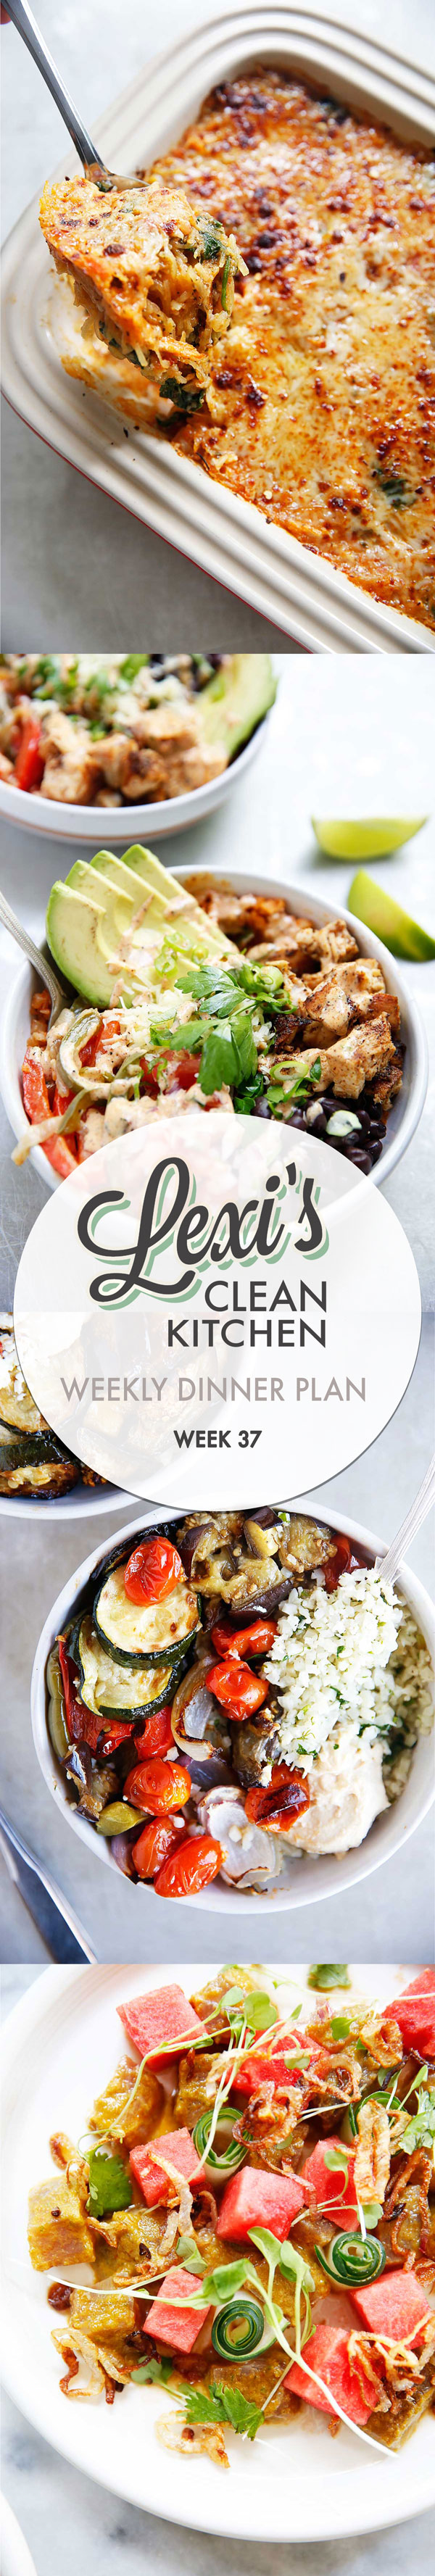 Weekly Dinner Plan Week 37 | Lexi's Clean Kitchen